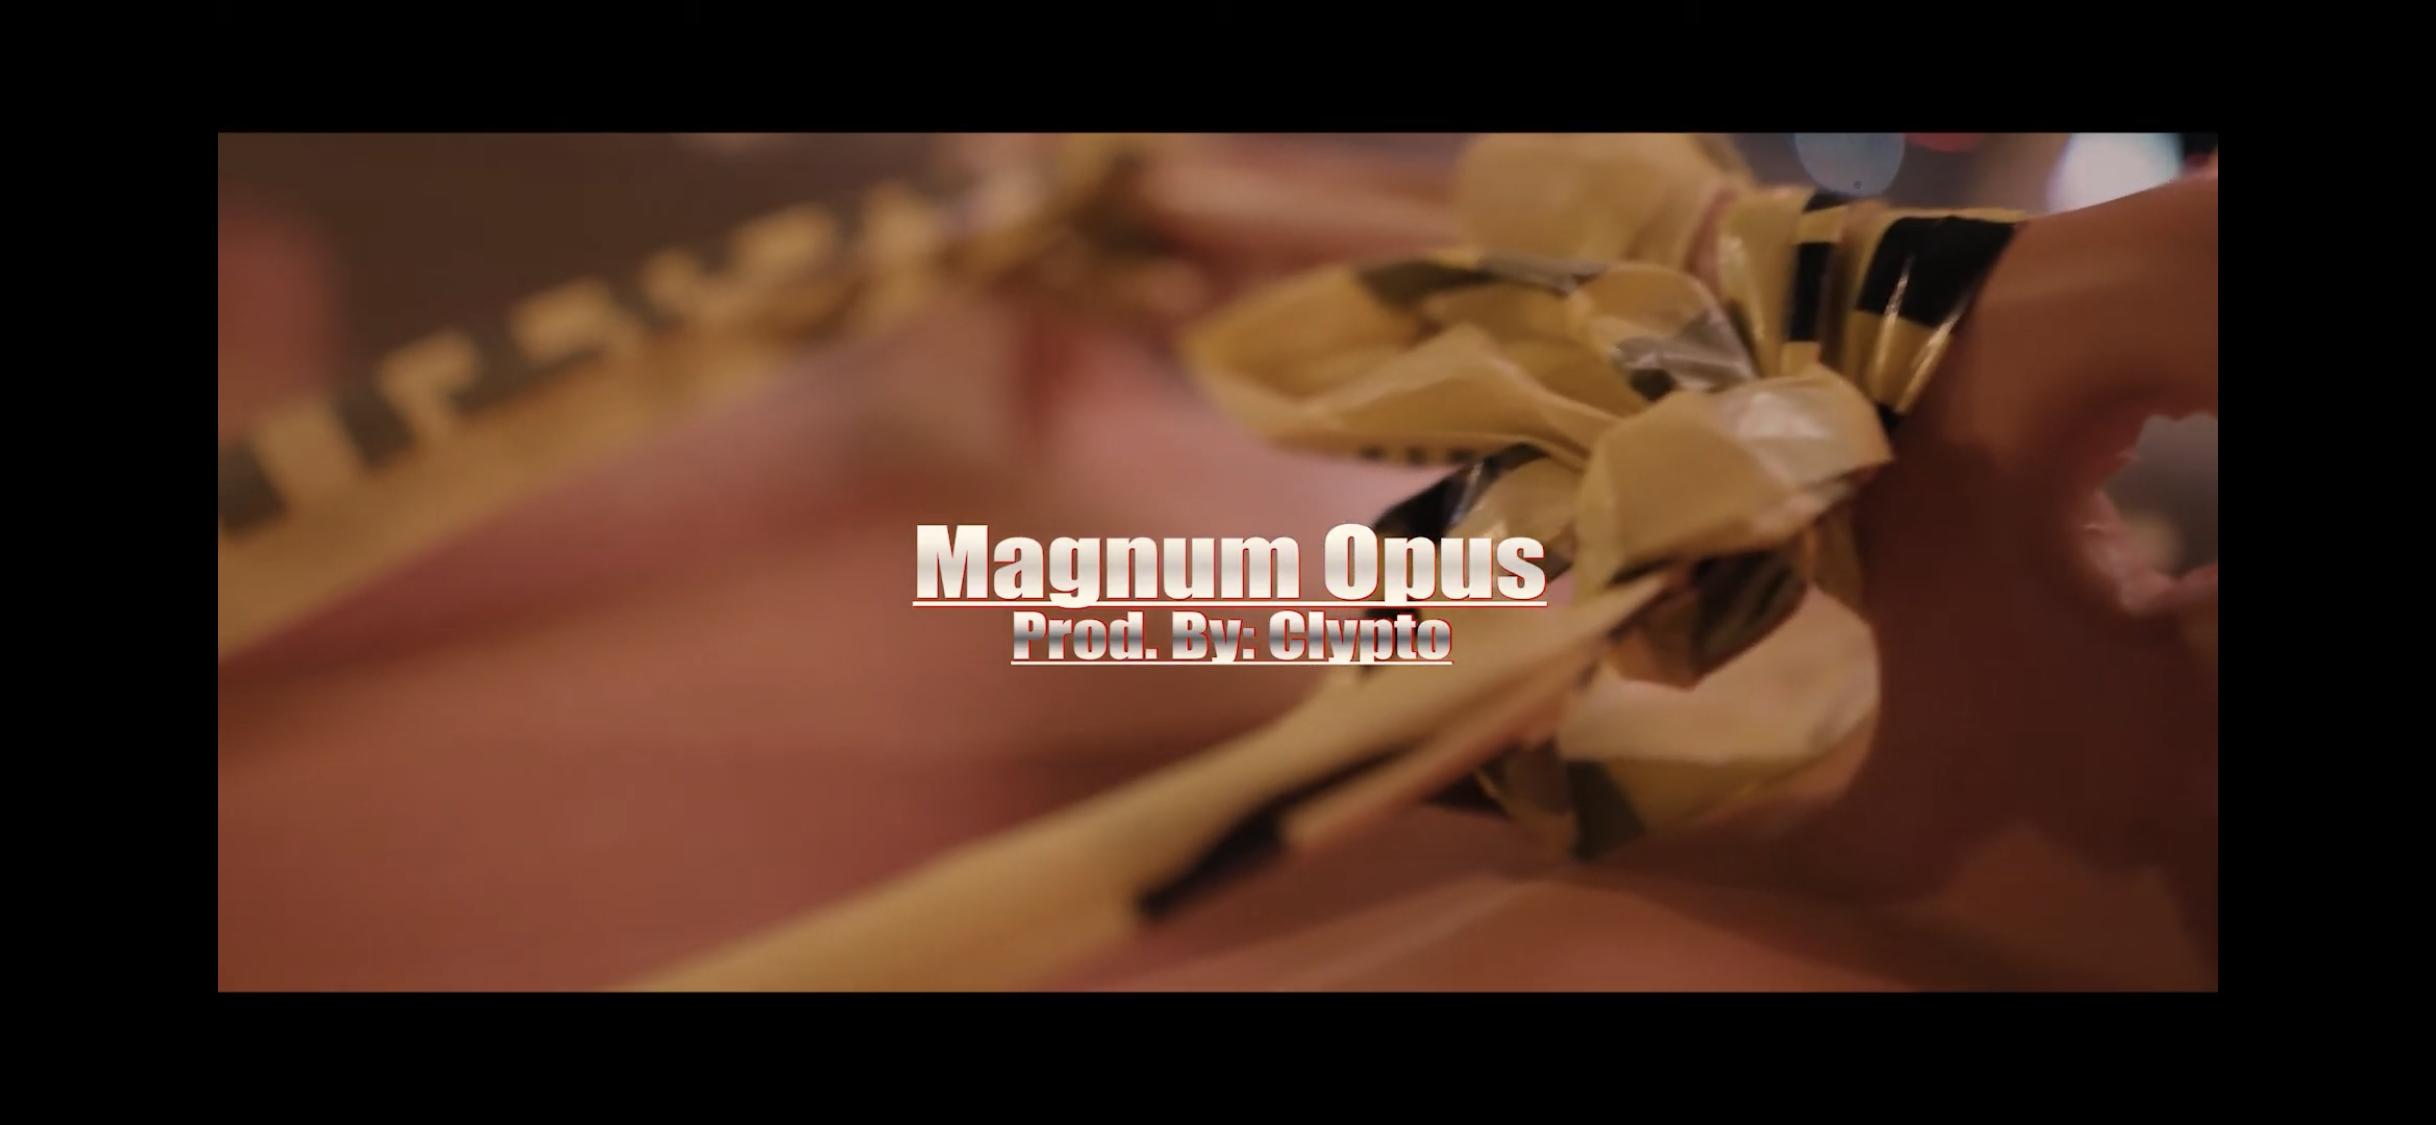 Supreme Cerebral - Magnum Opus (Prod. By: Clypto) {Official Music Video}